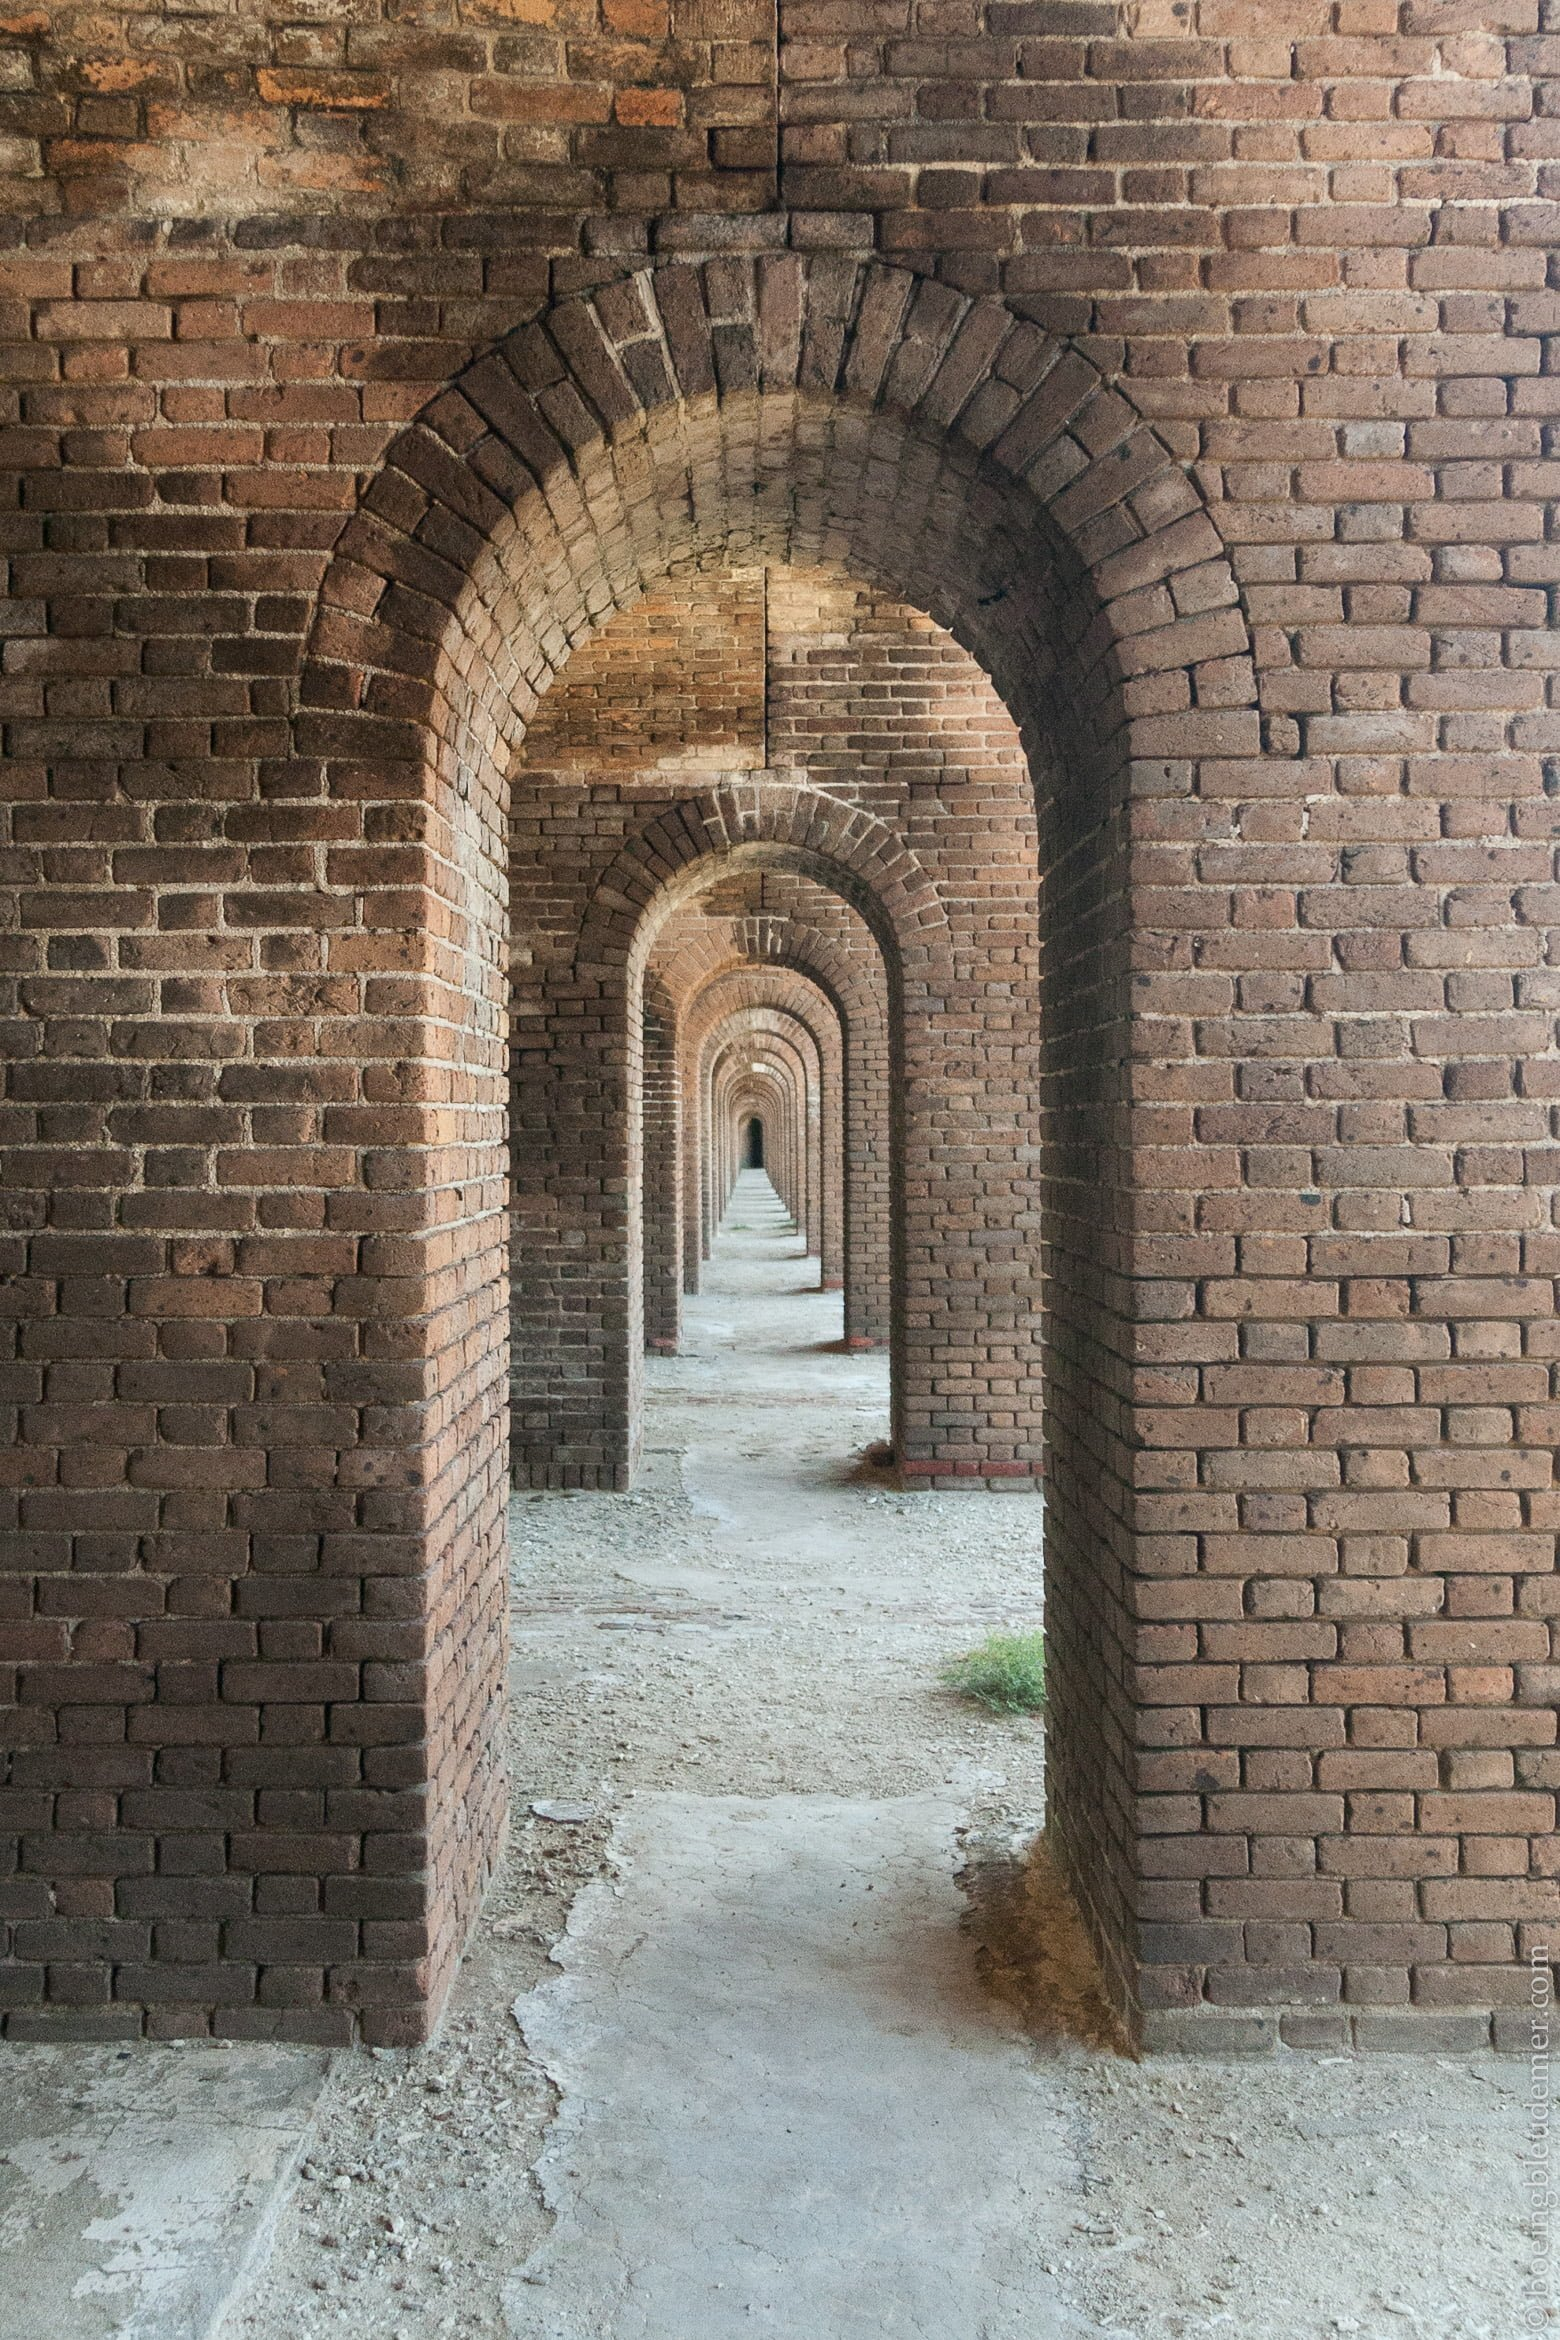 Visiting Fort Jefferson 2